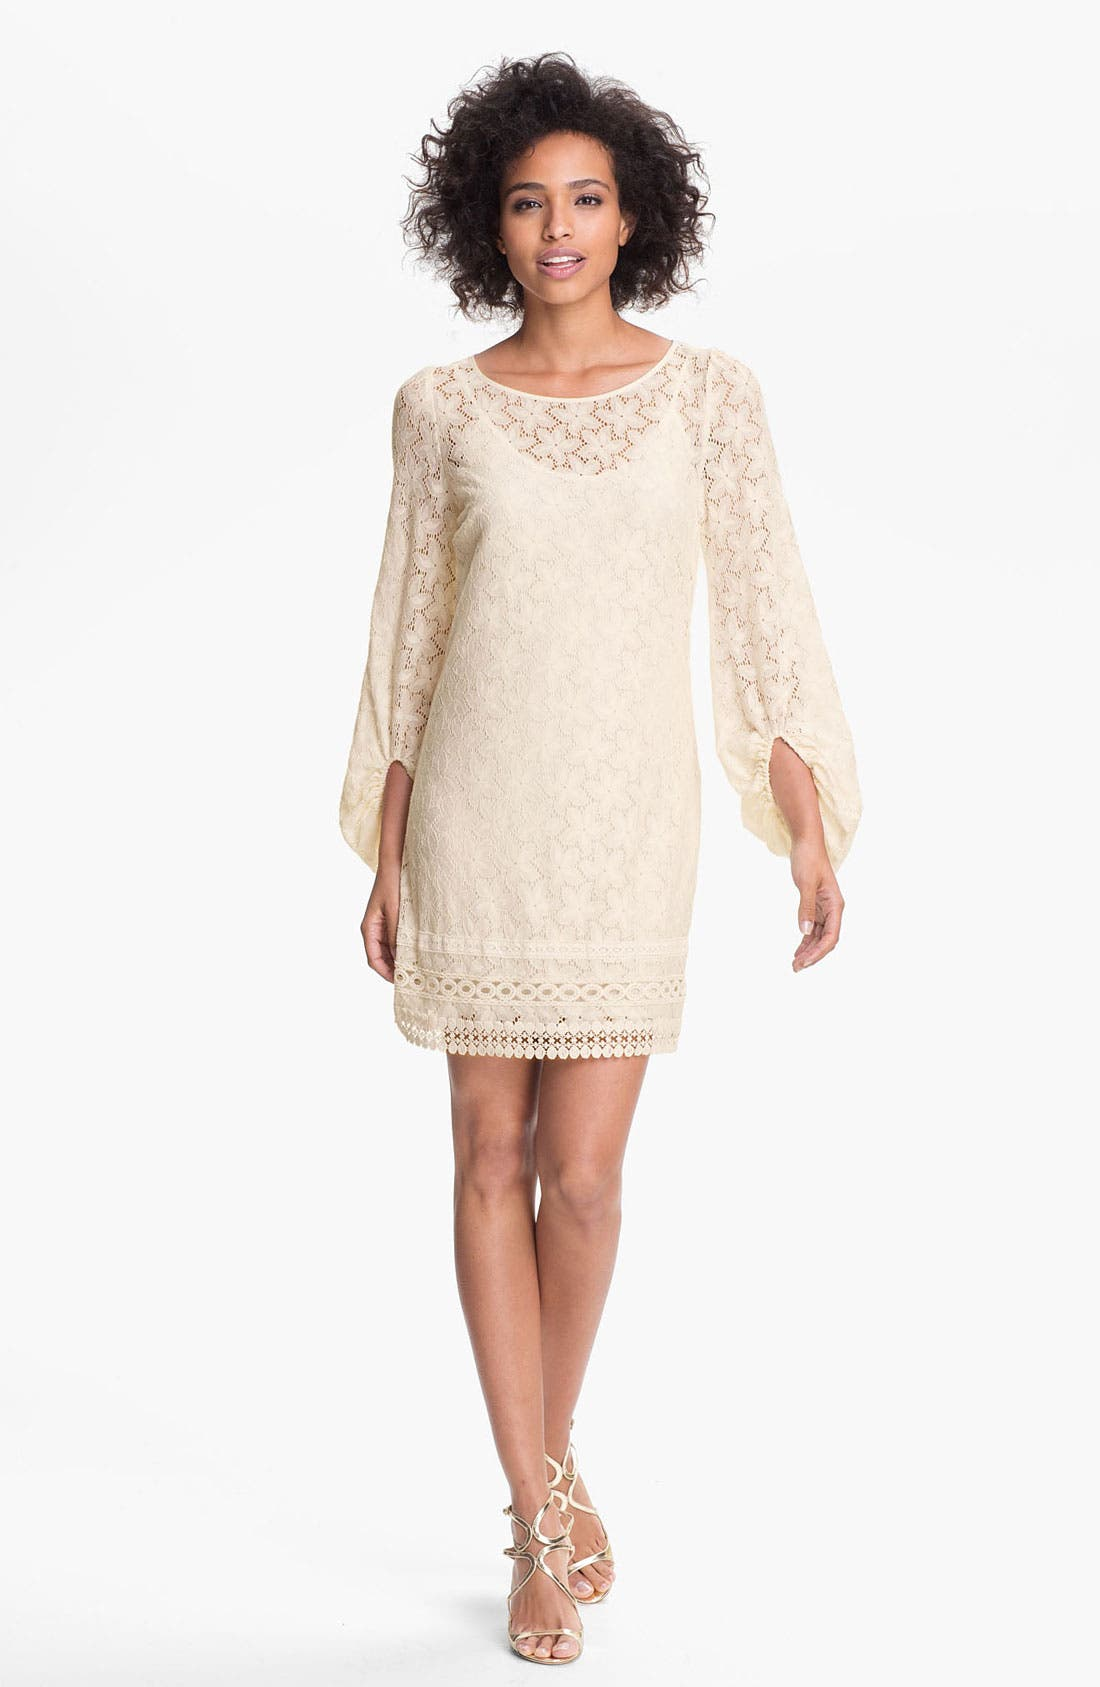 Alternate Image 1 Selected - Laundry by Shelli Segal 'Sand Dollar' Lace Shift Dress (Petite)